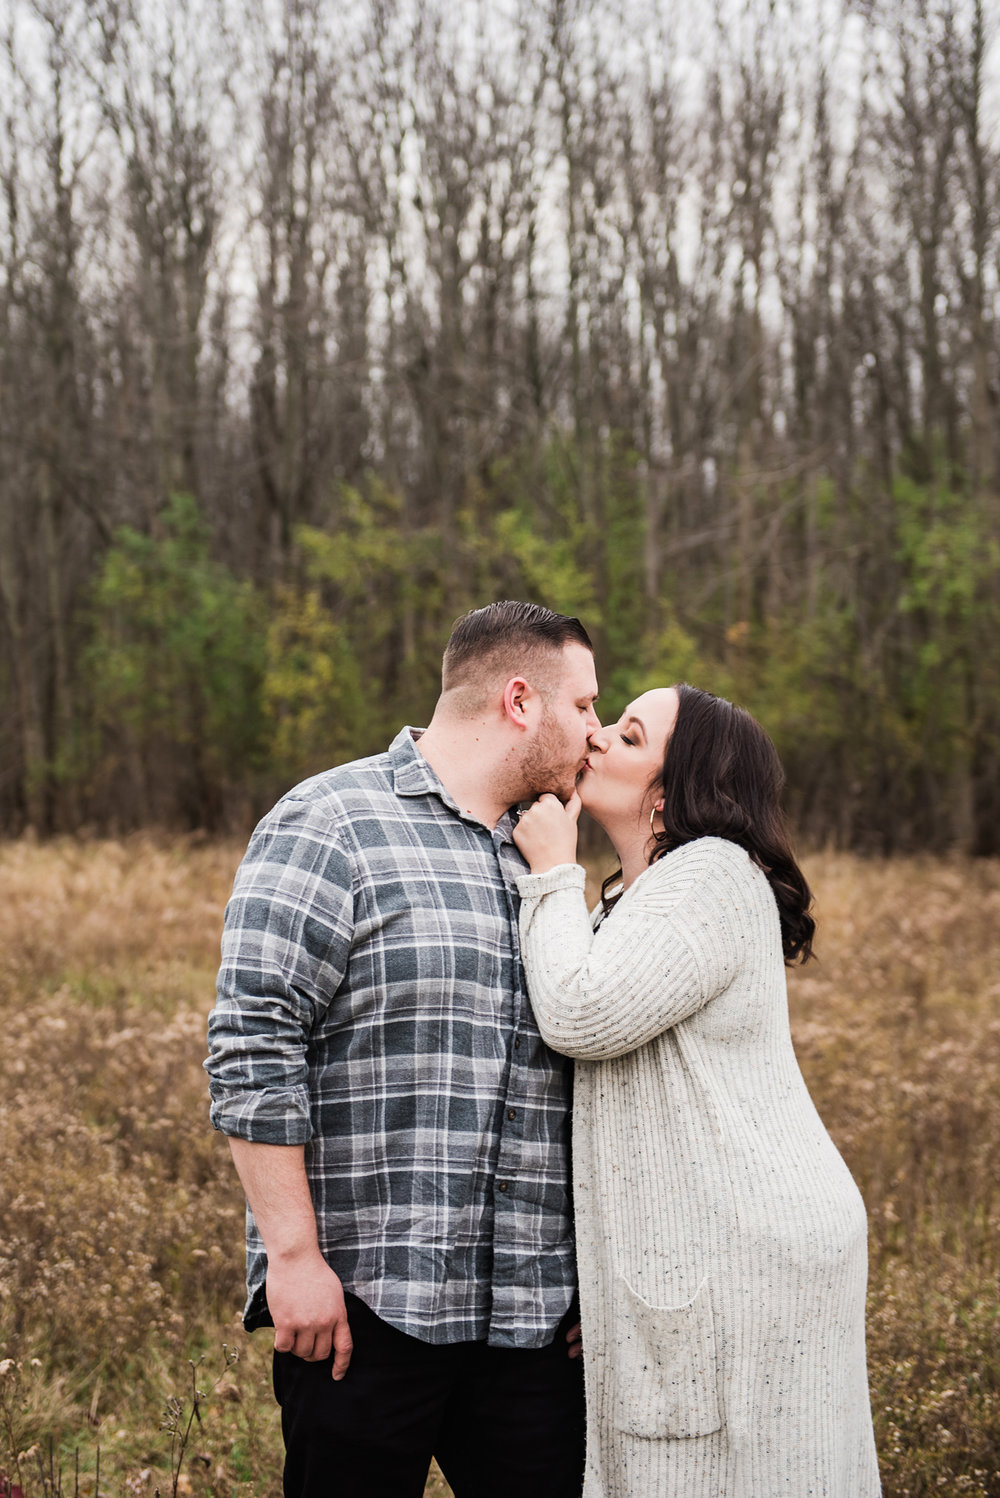 Tinker_Nature_Park_Rochester_Engagement_Session_JILL_STUDIO_Rochester_NY_Photographer_DSC_0451.jpg